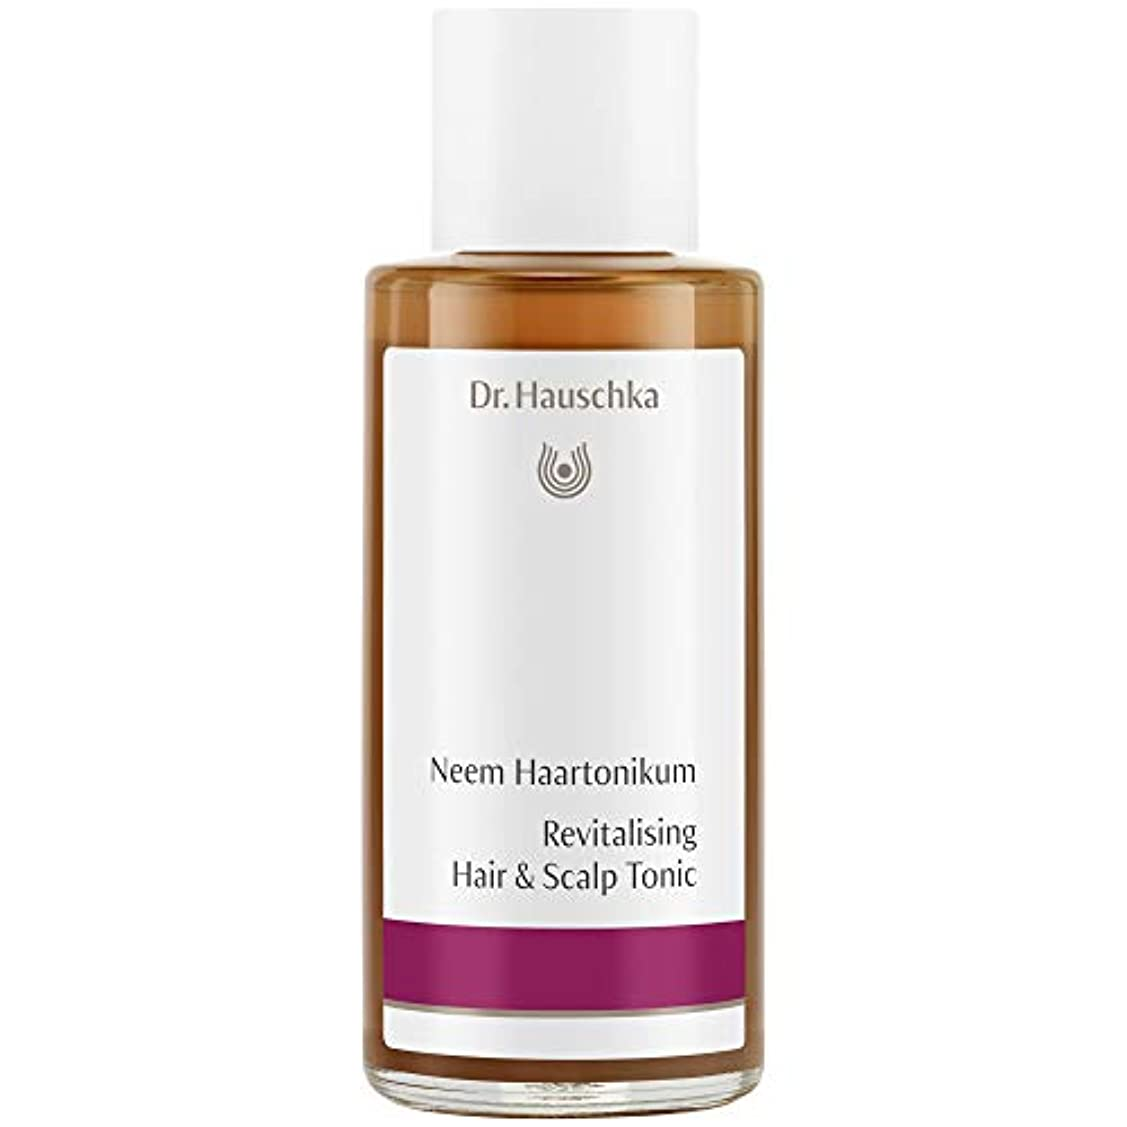 [Dr Hauschka] Drハウシュカニームヘアローション100ミリリットル - Dr Hauschka Neem Hair Lotion 100ml [並行輸入品]